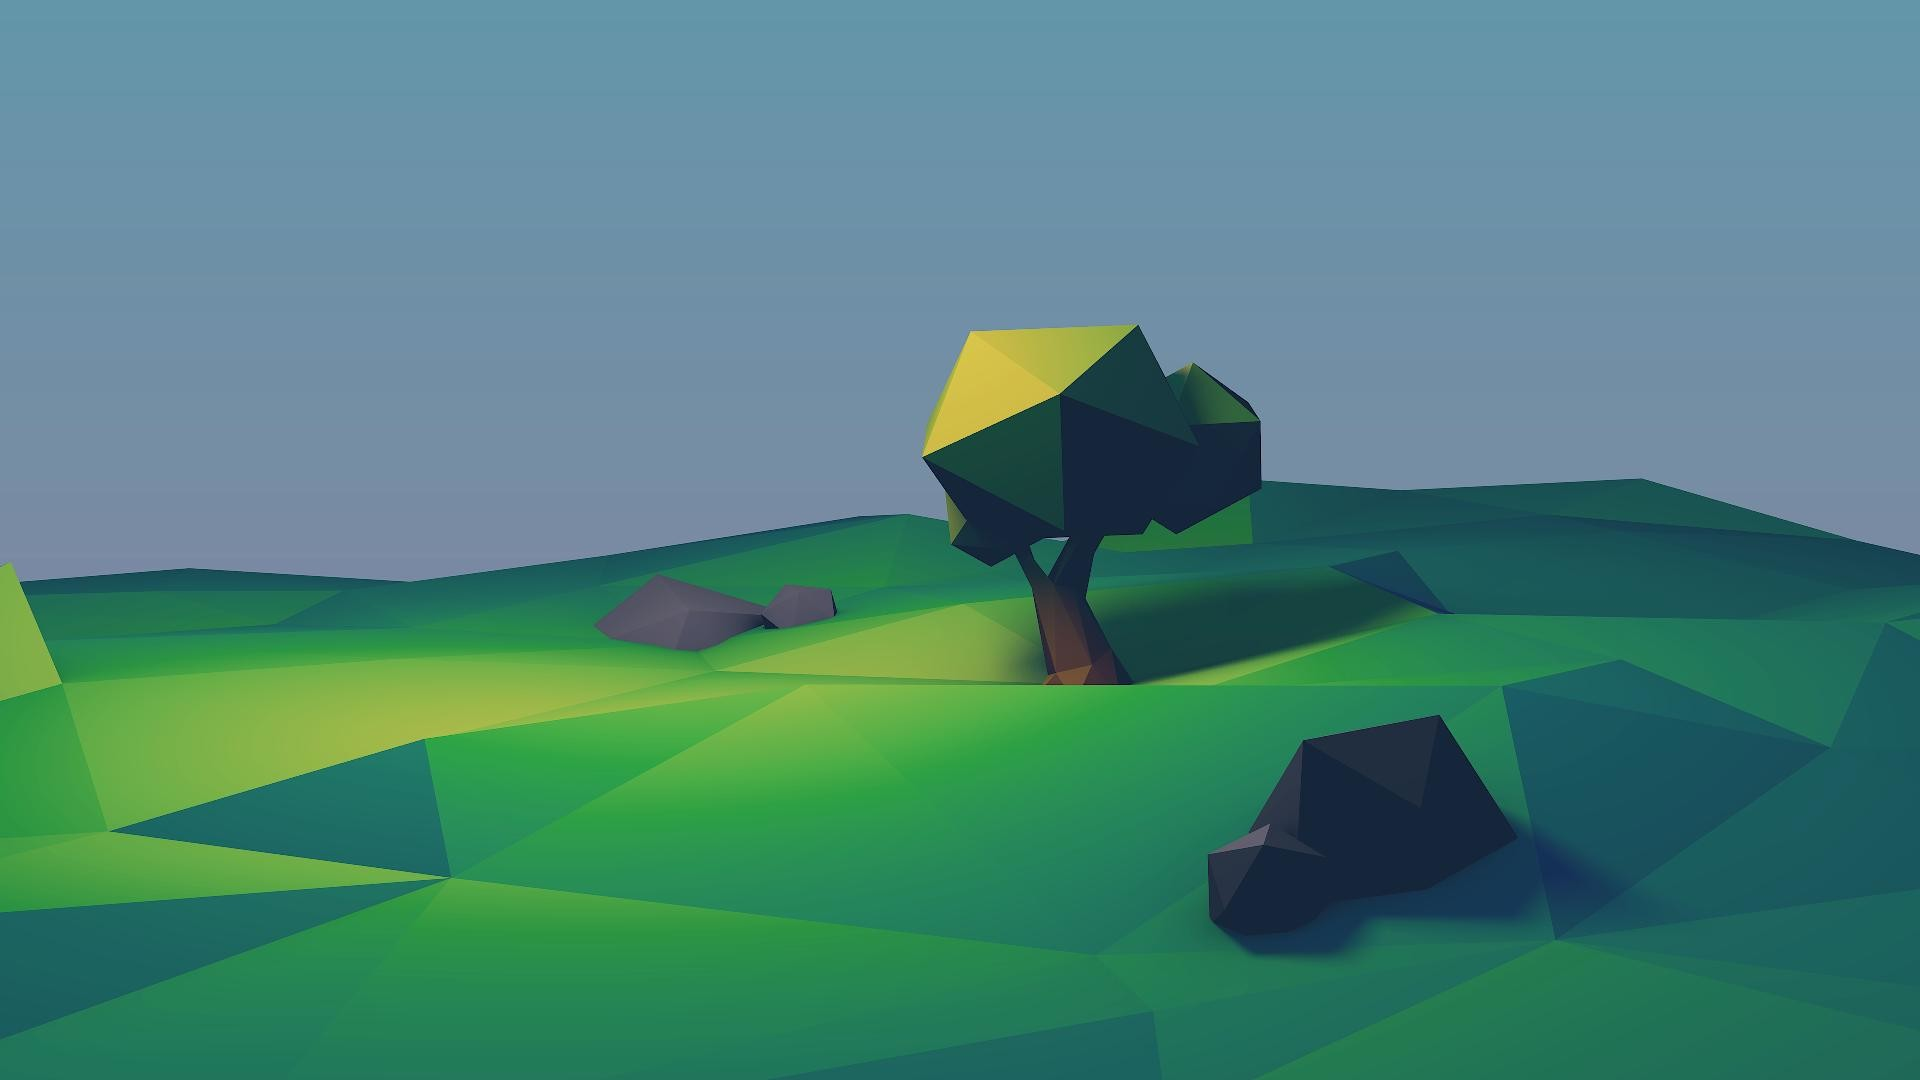 1920x1080 wallpaper.wiki-Awesome-2D-Lowpoly-Picture-by-imrooniel-